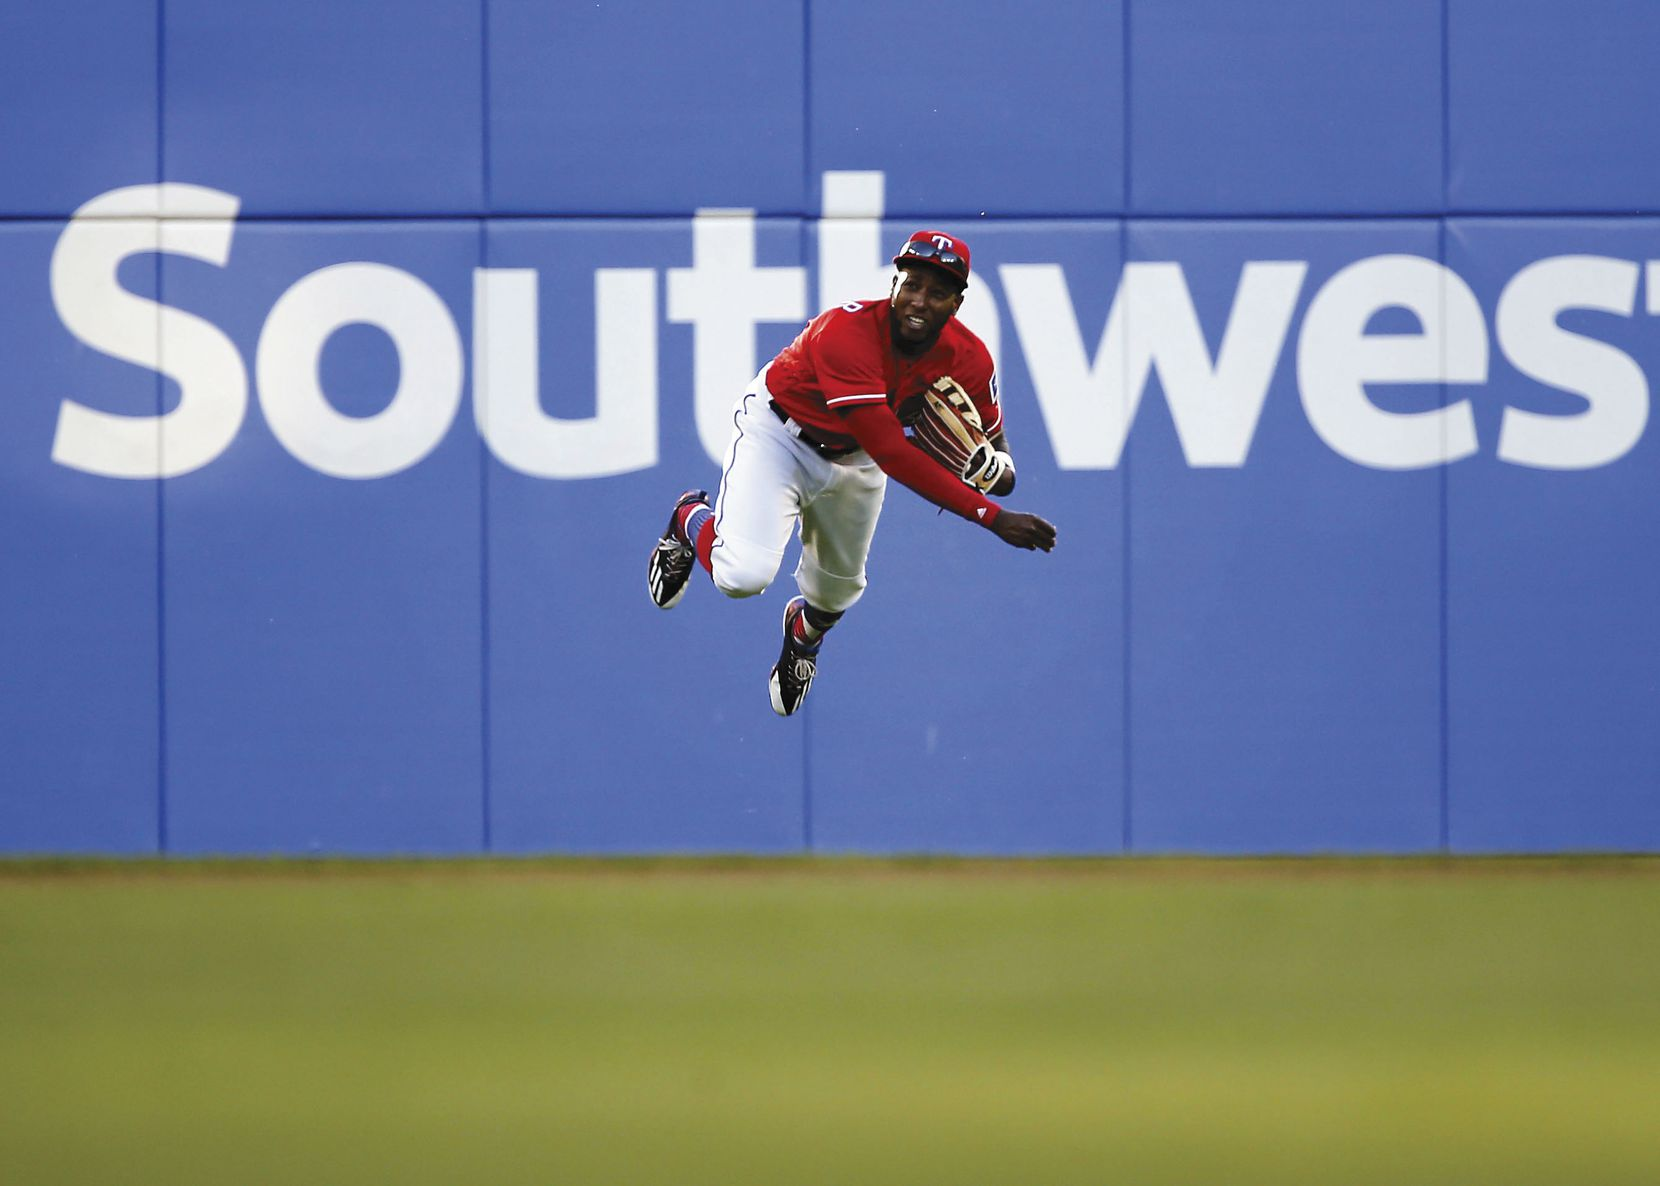 Rangers left fielder Jurickson Profar goes flying to return a ball in the third inning against the Indians on Opening Day on April 3.